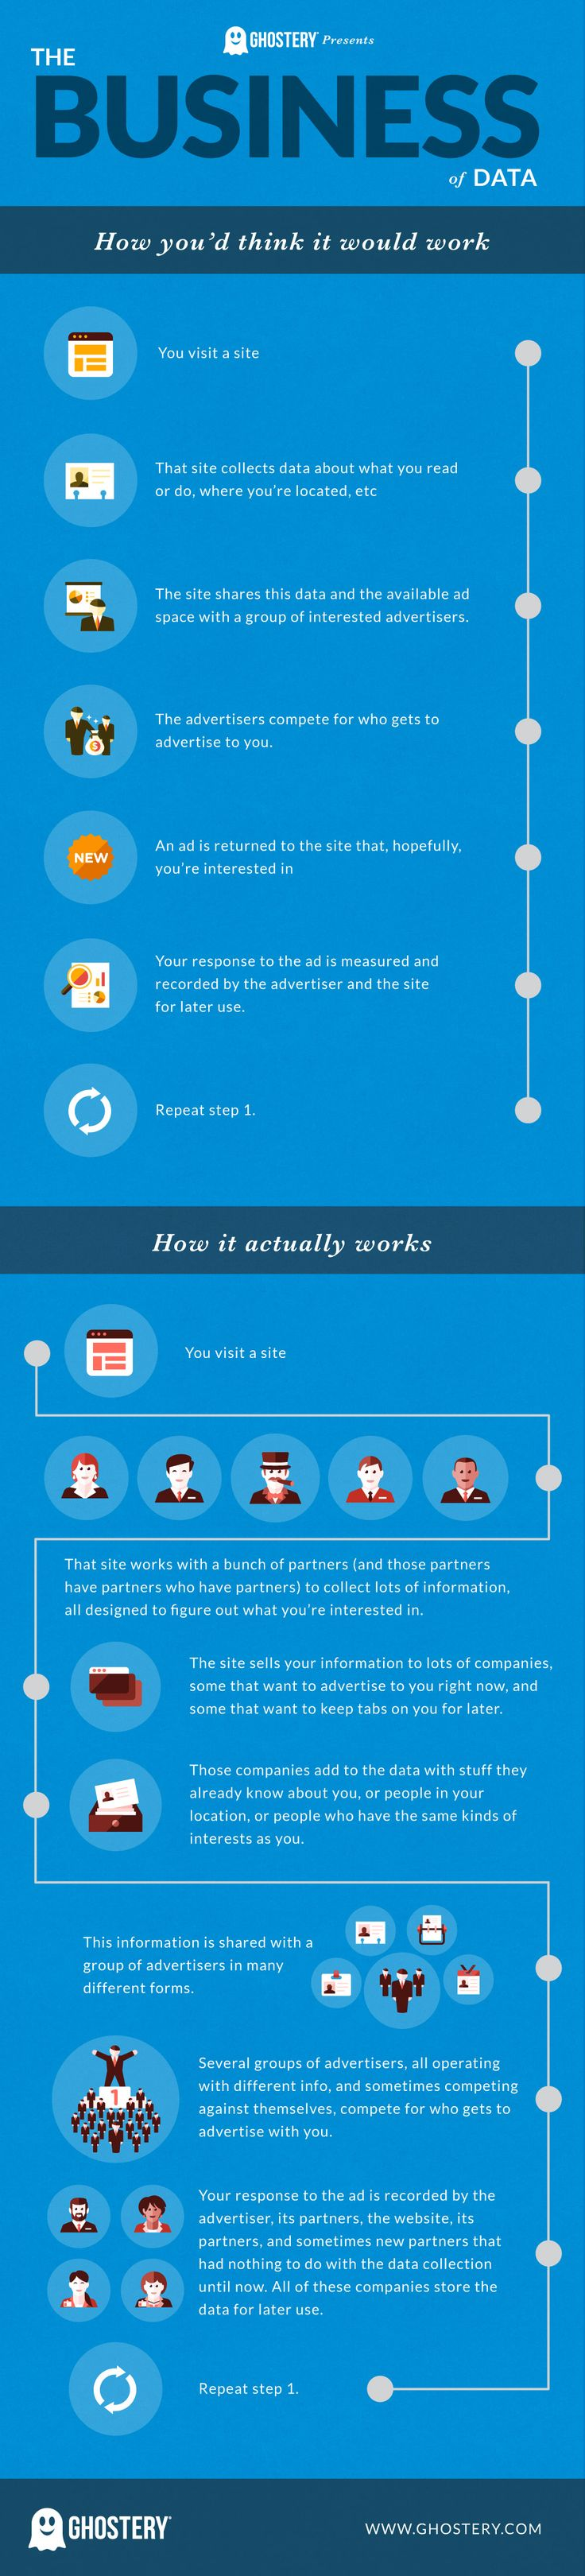 The Business of Data (Infographic) January 21, 2015 By Nick Pantelaros